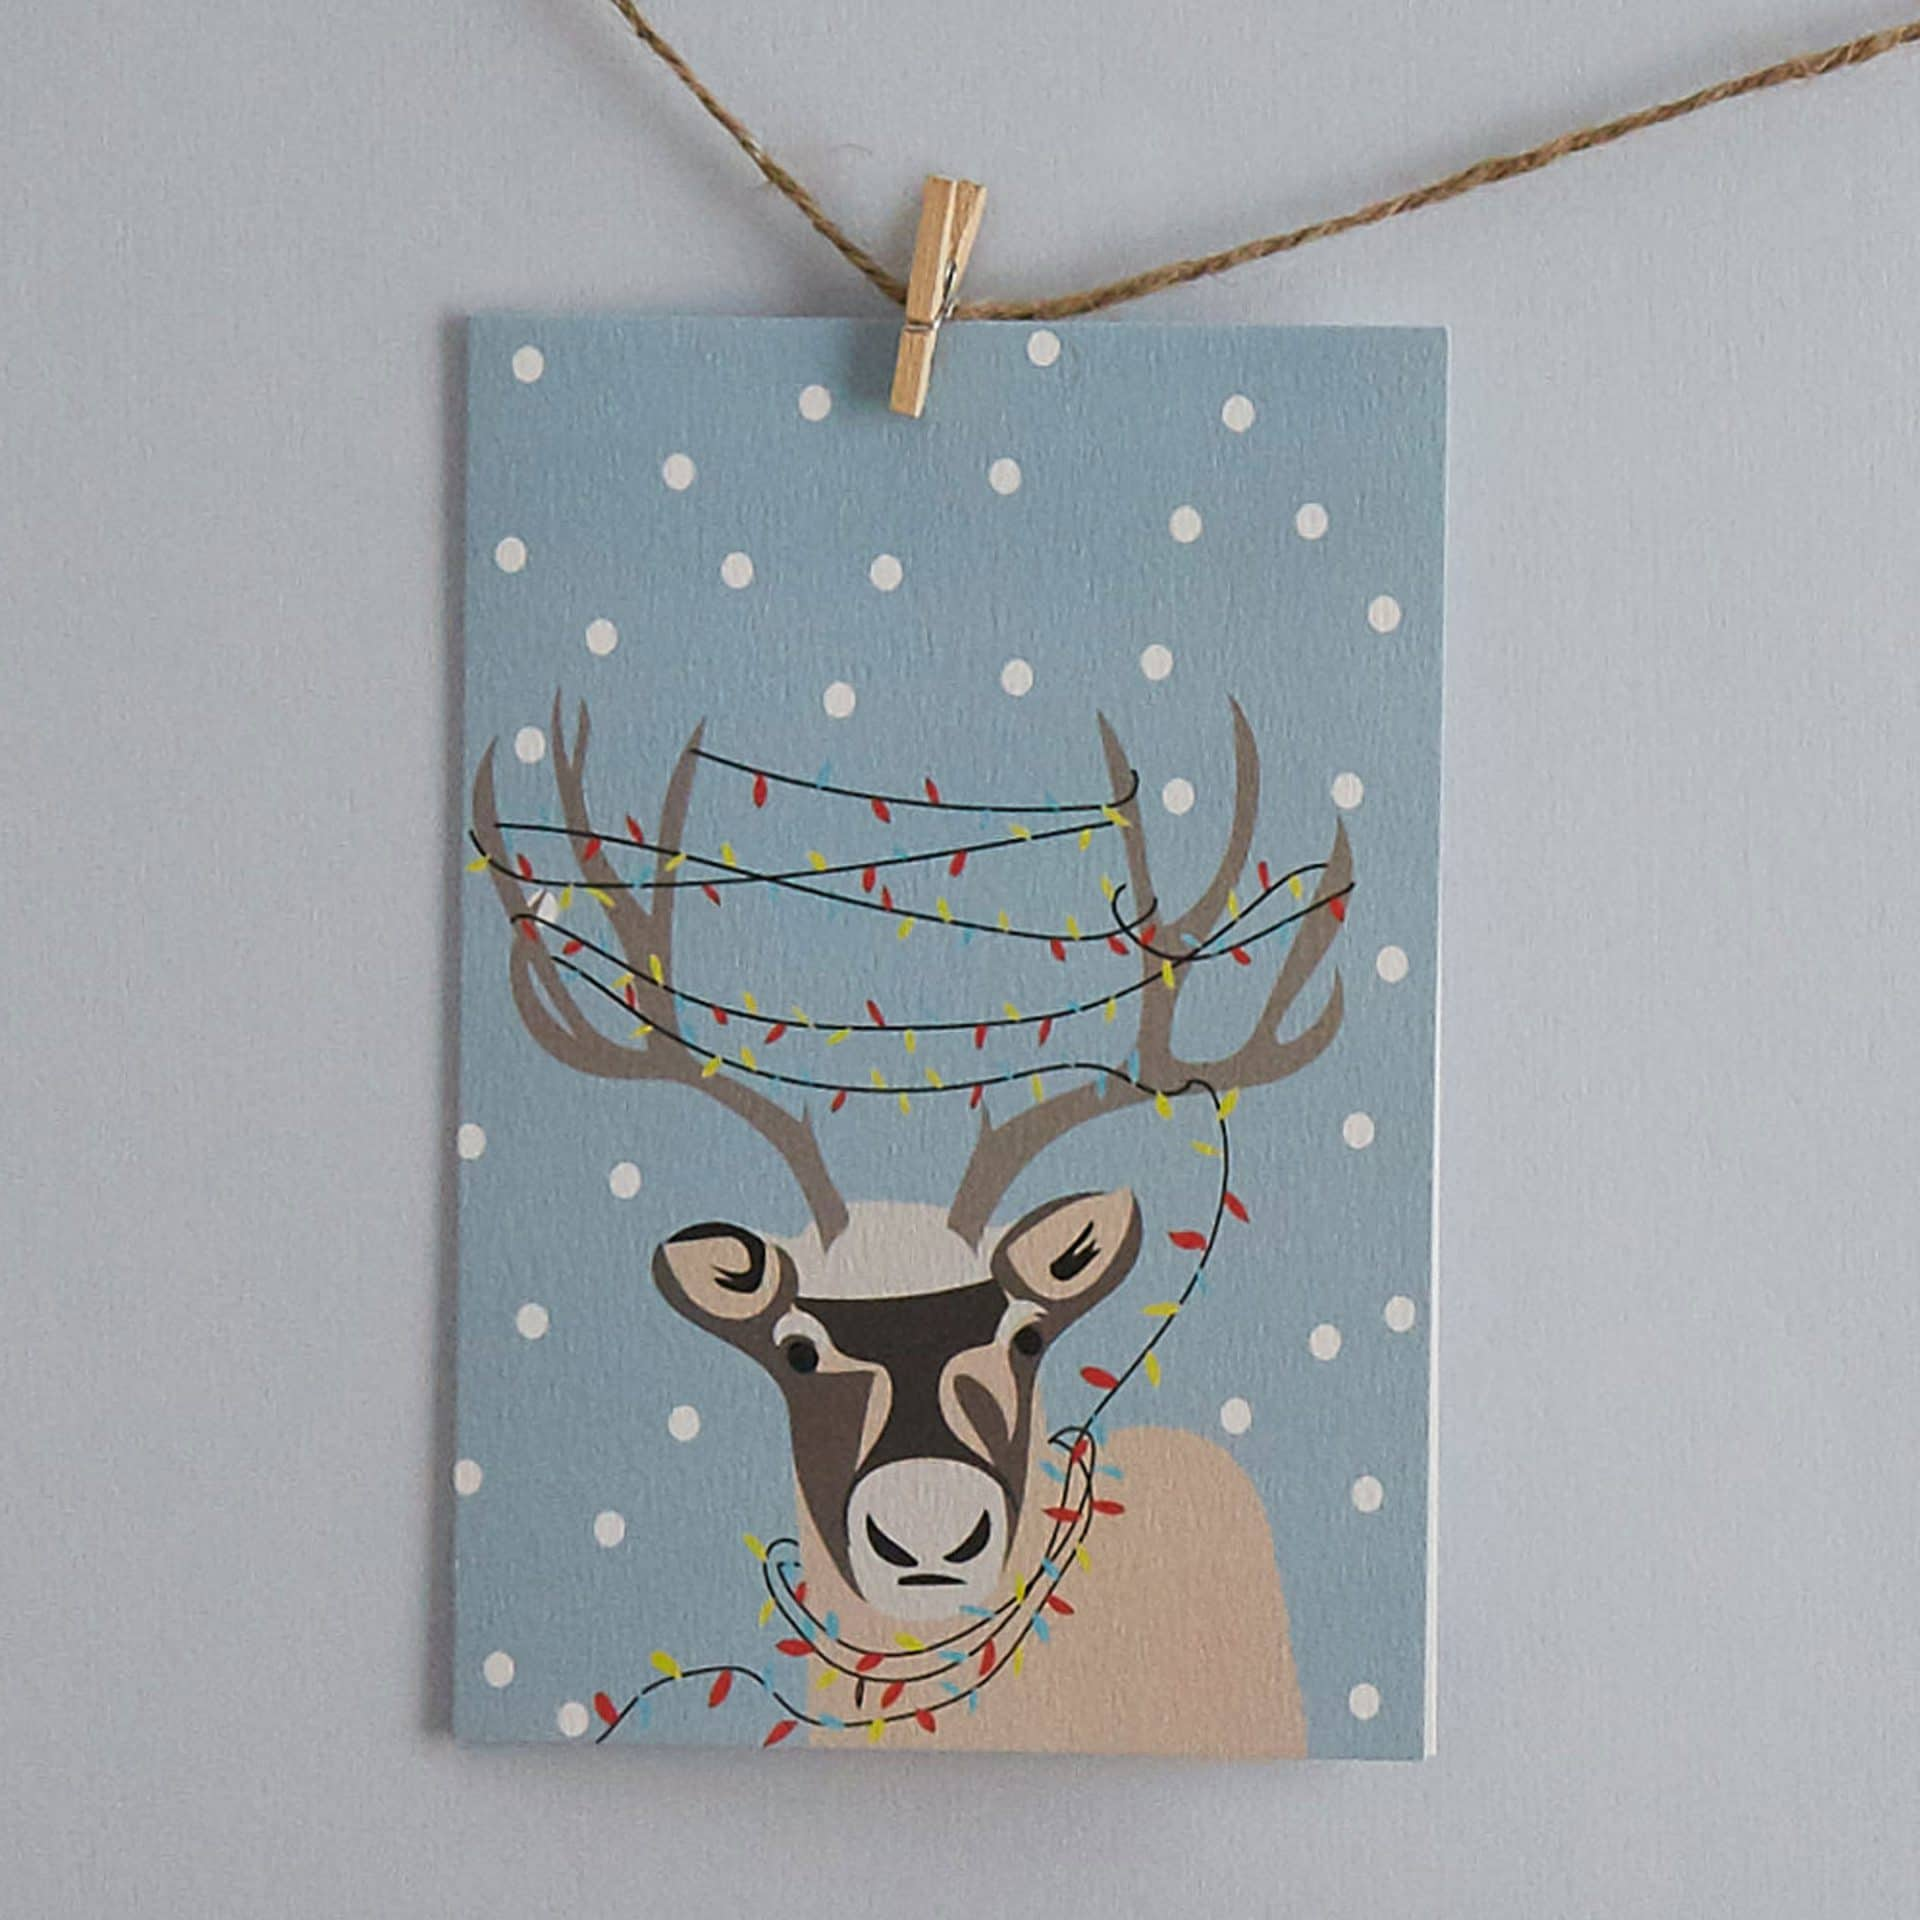 Lorna Syson designs CHristmas card with reindeer